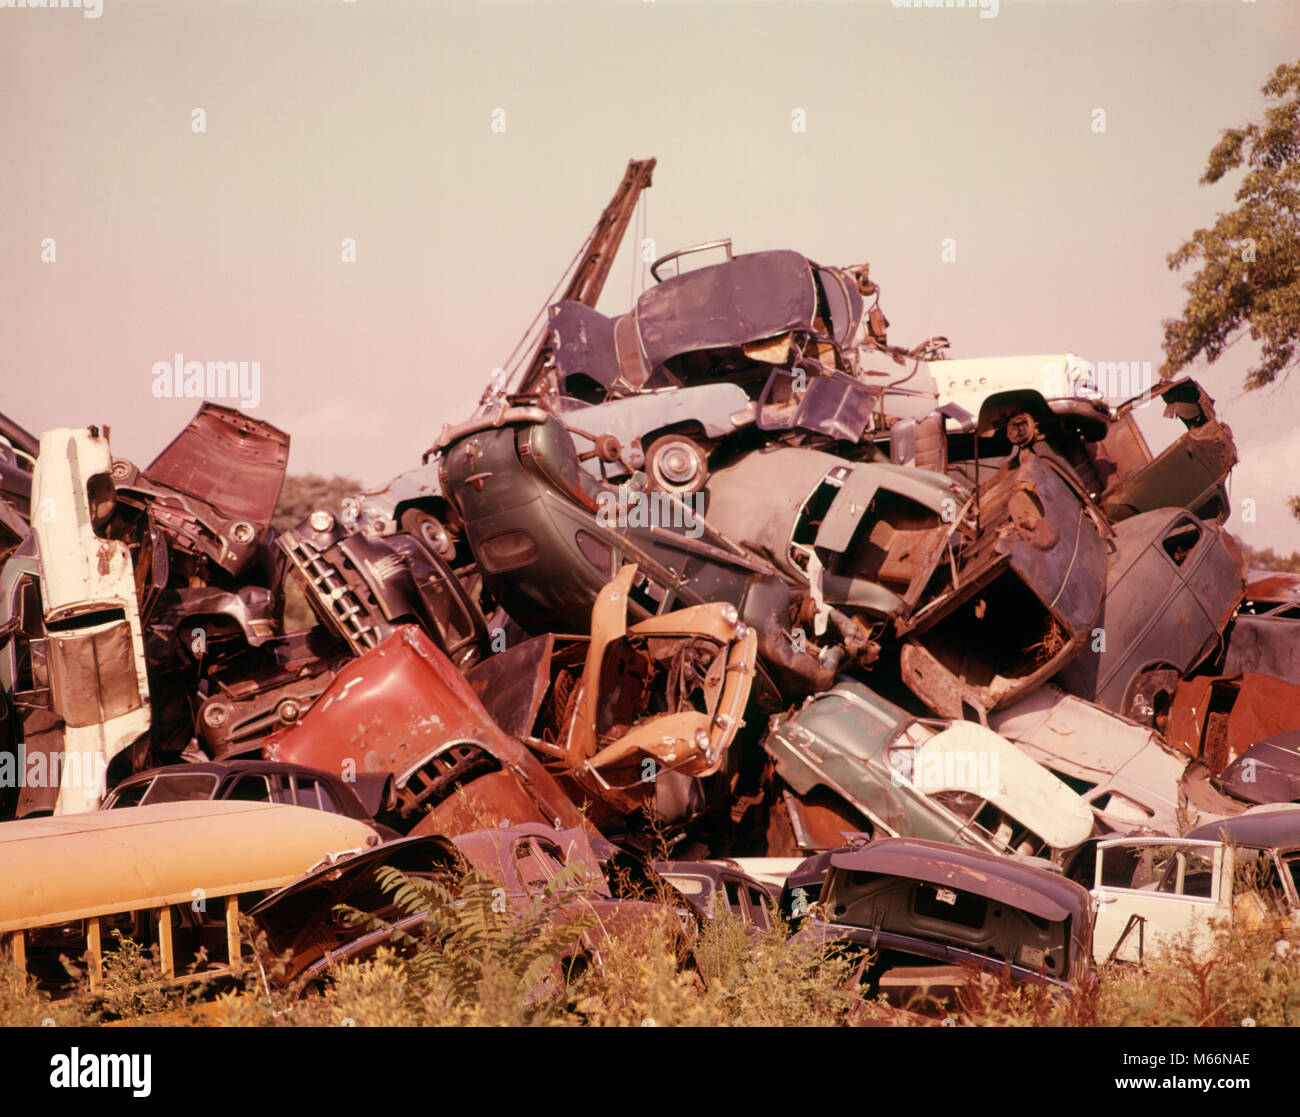 1960s AUTO GRAVEYARD RUSTY OLD CARS AUTOMOBILES PILE AT JUNKYARD ...